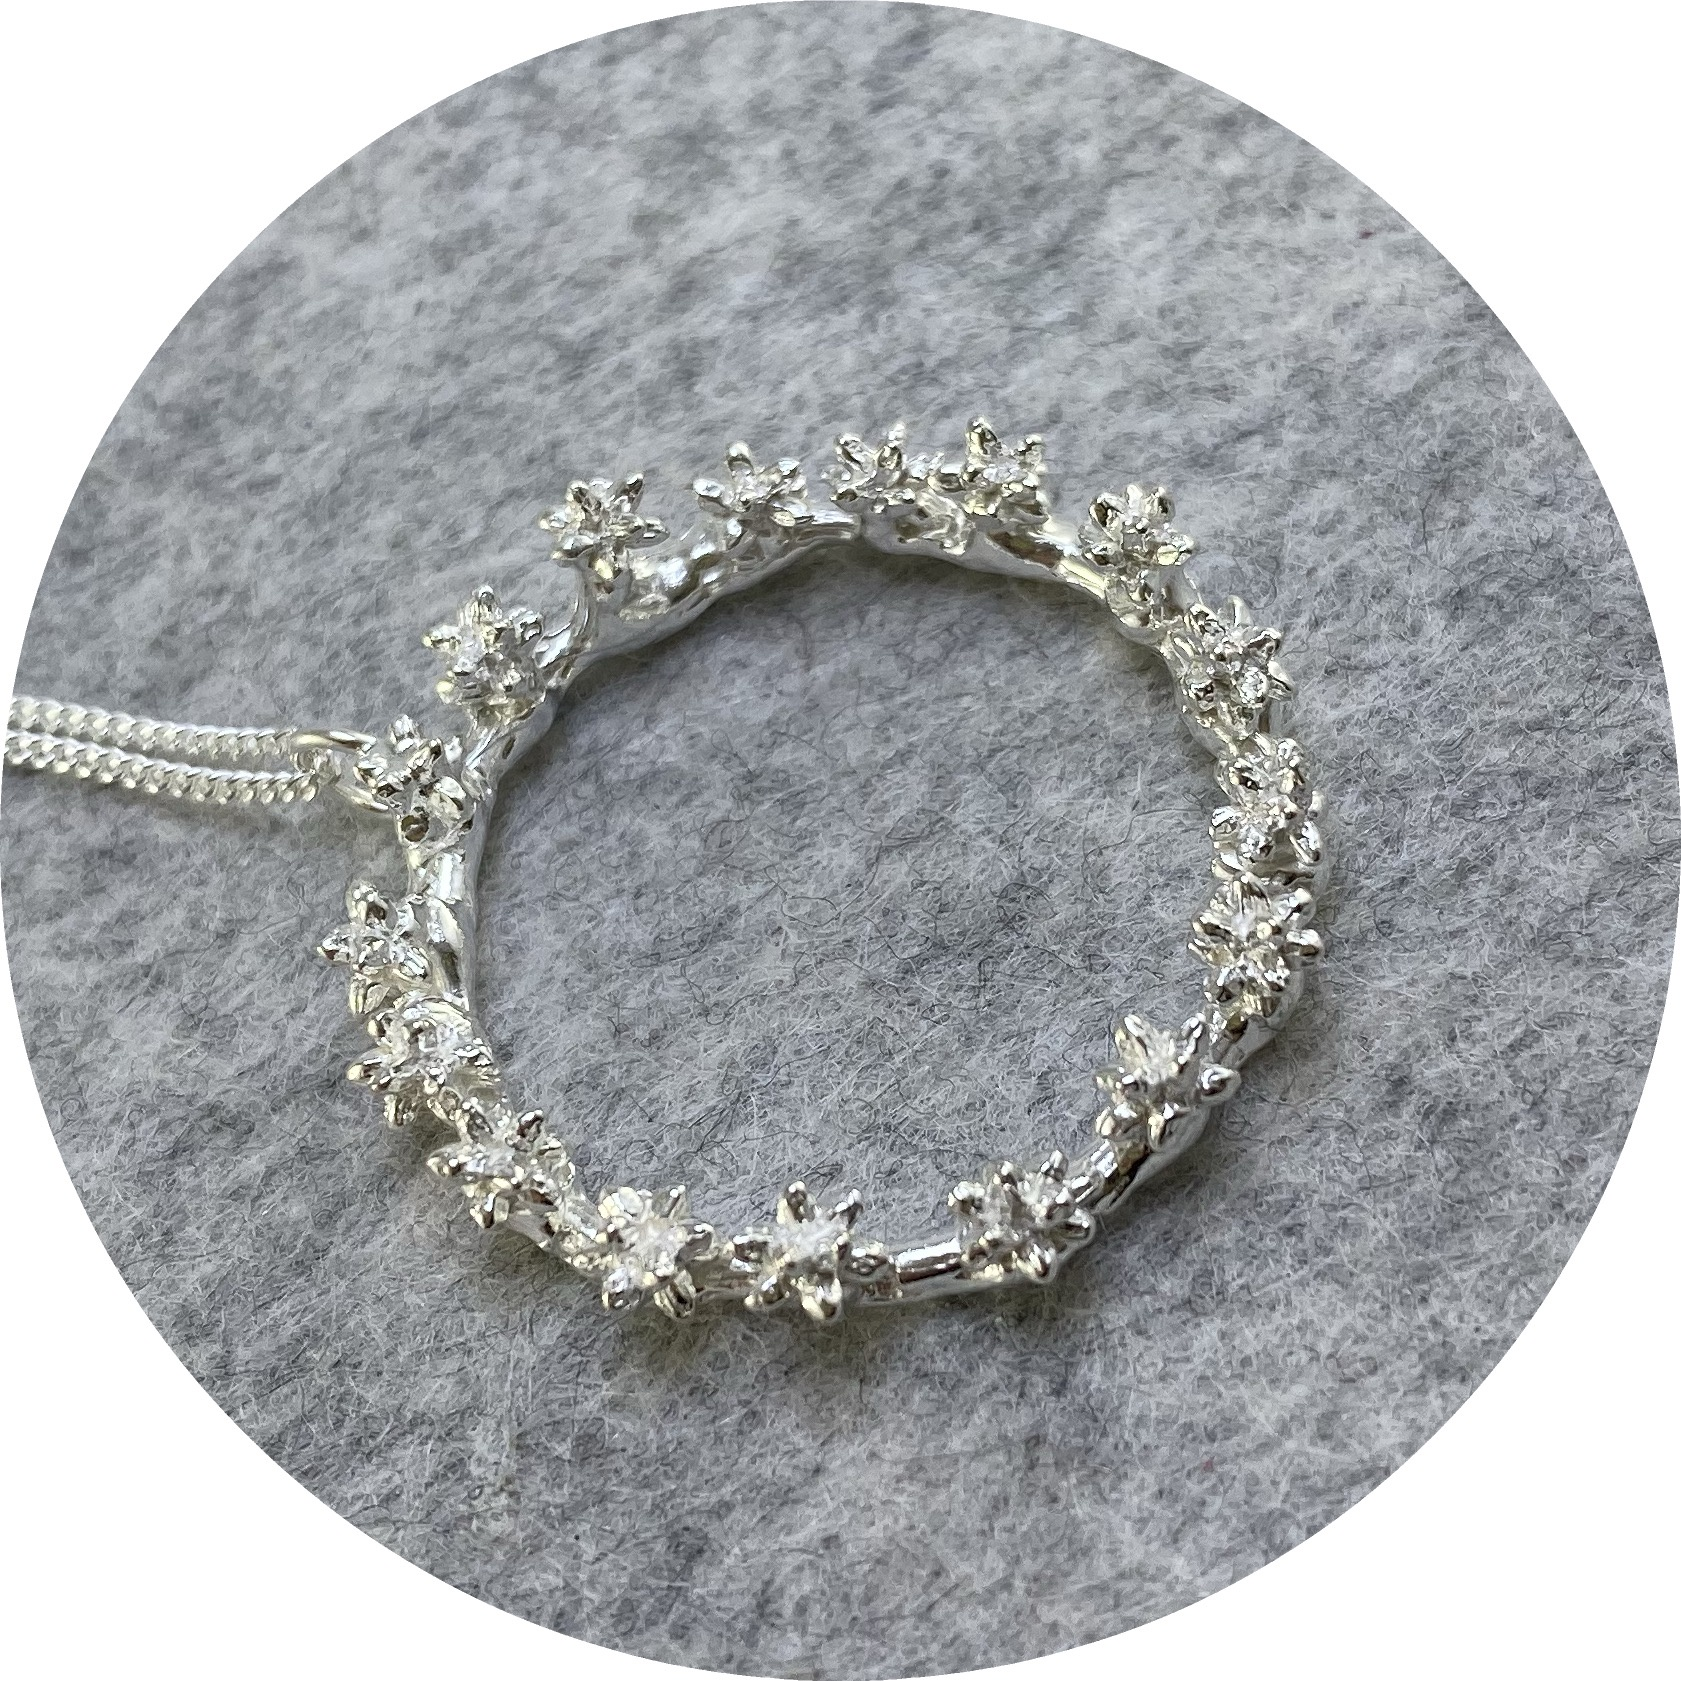 Manuela Igreja- Spur wreath necklace. Sterling silver.